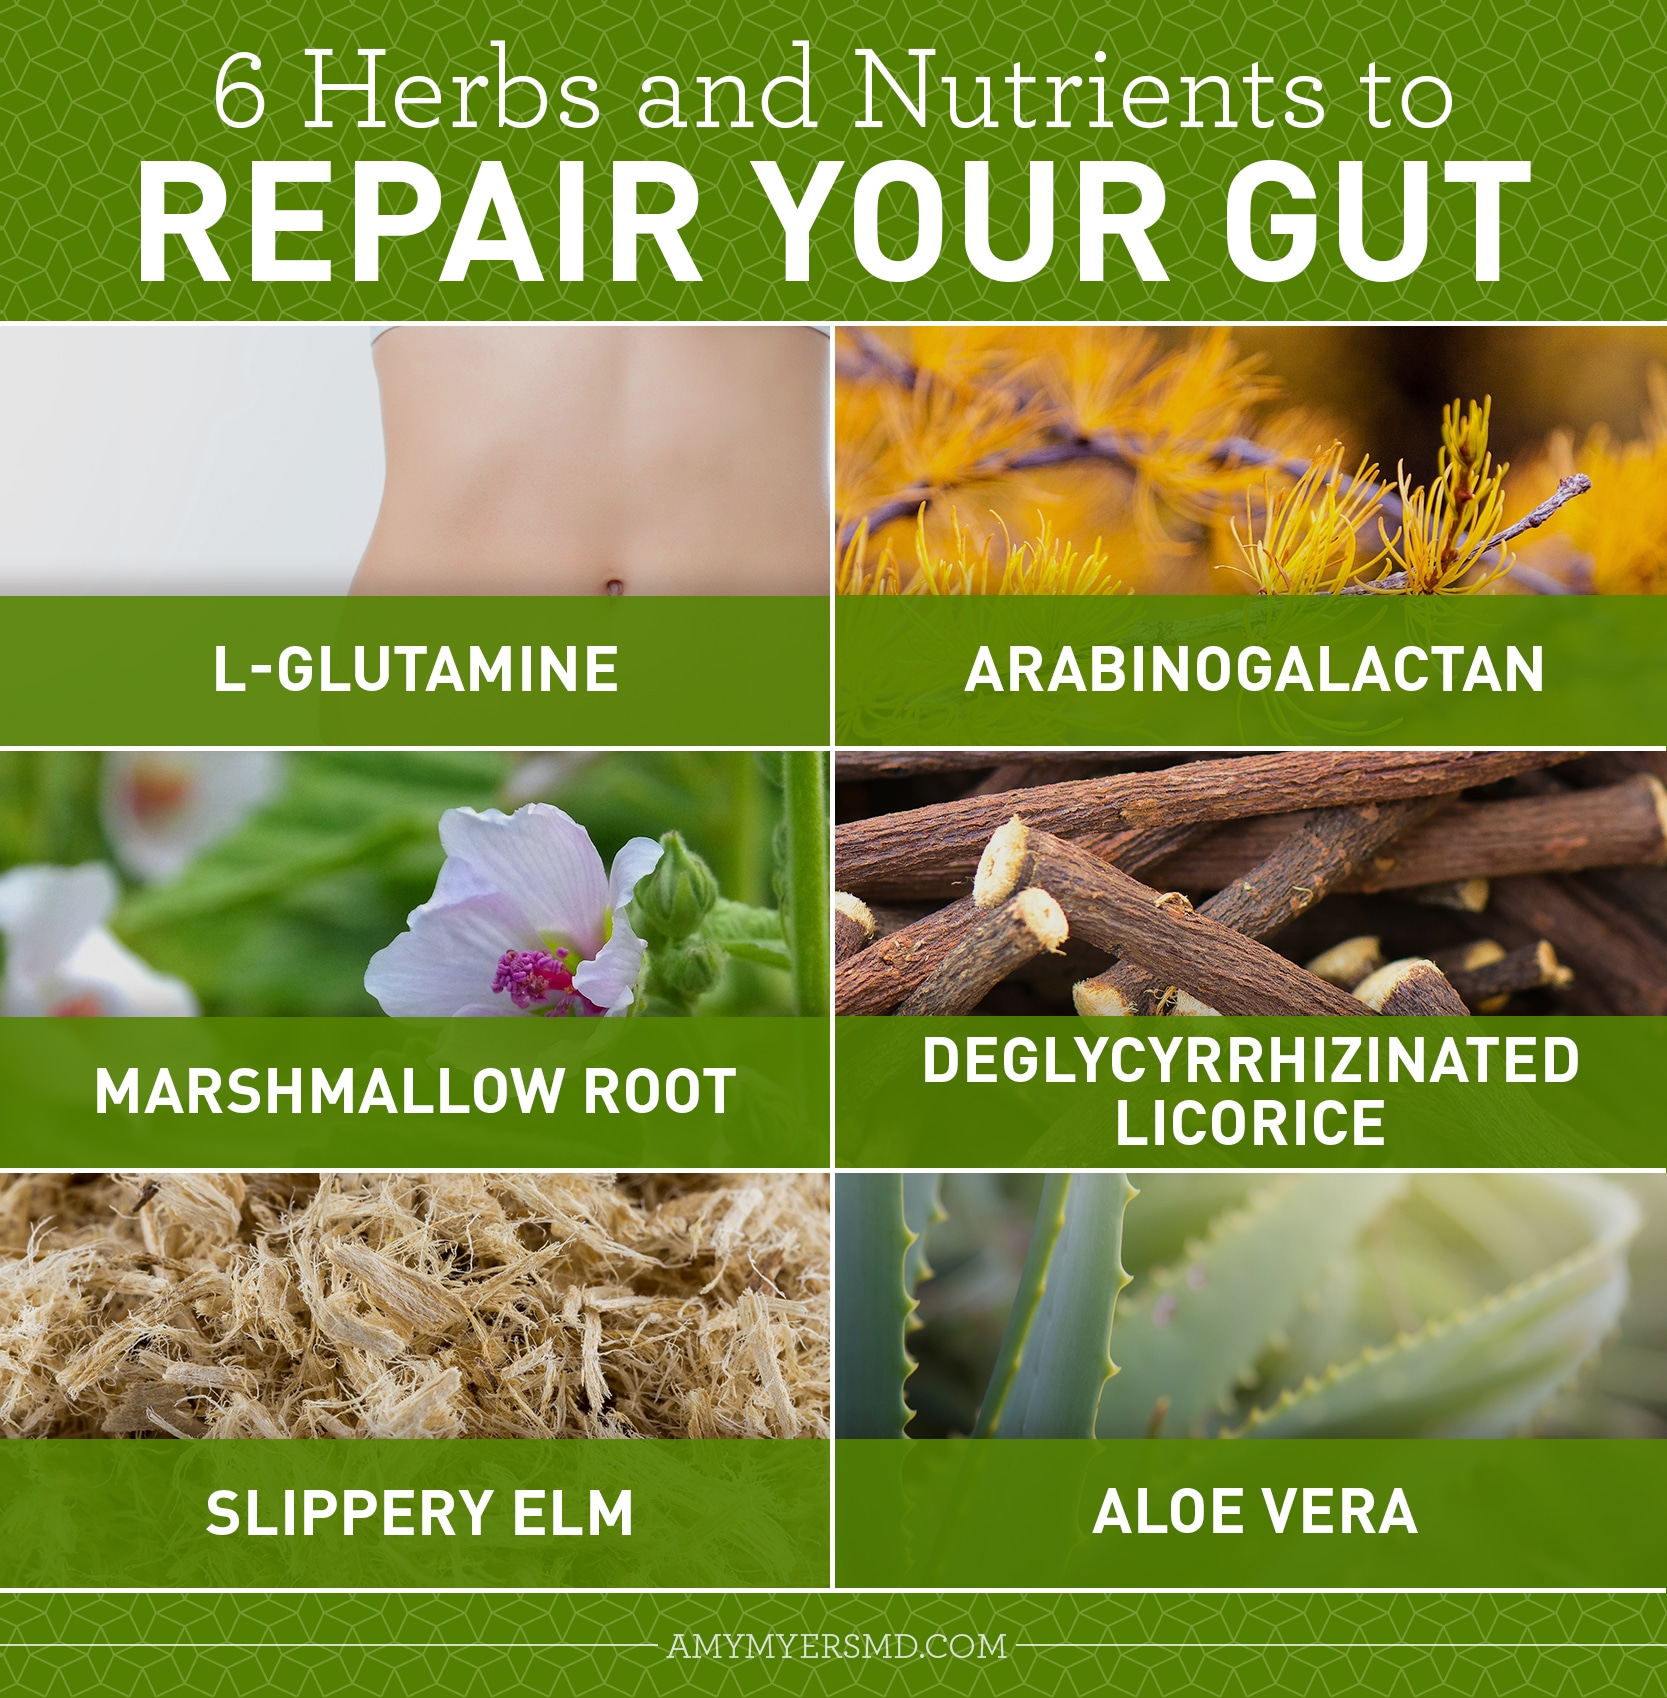 6 Herbs and Nutrients to Repair Your Gut - Amy Myers MD